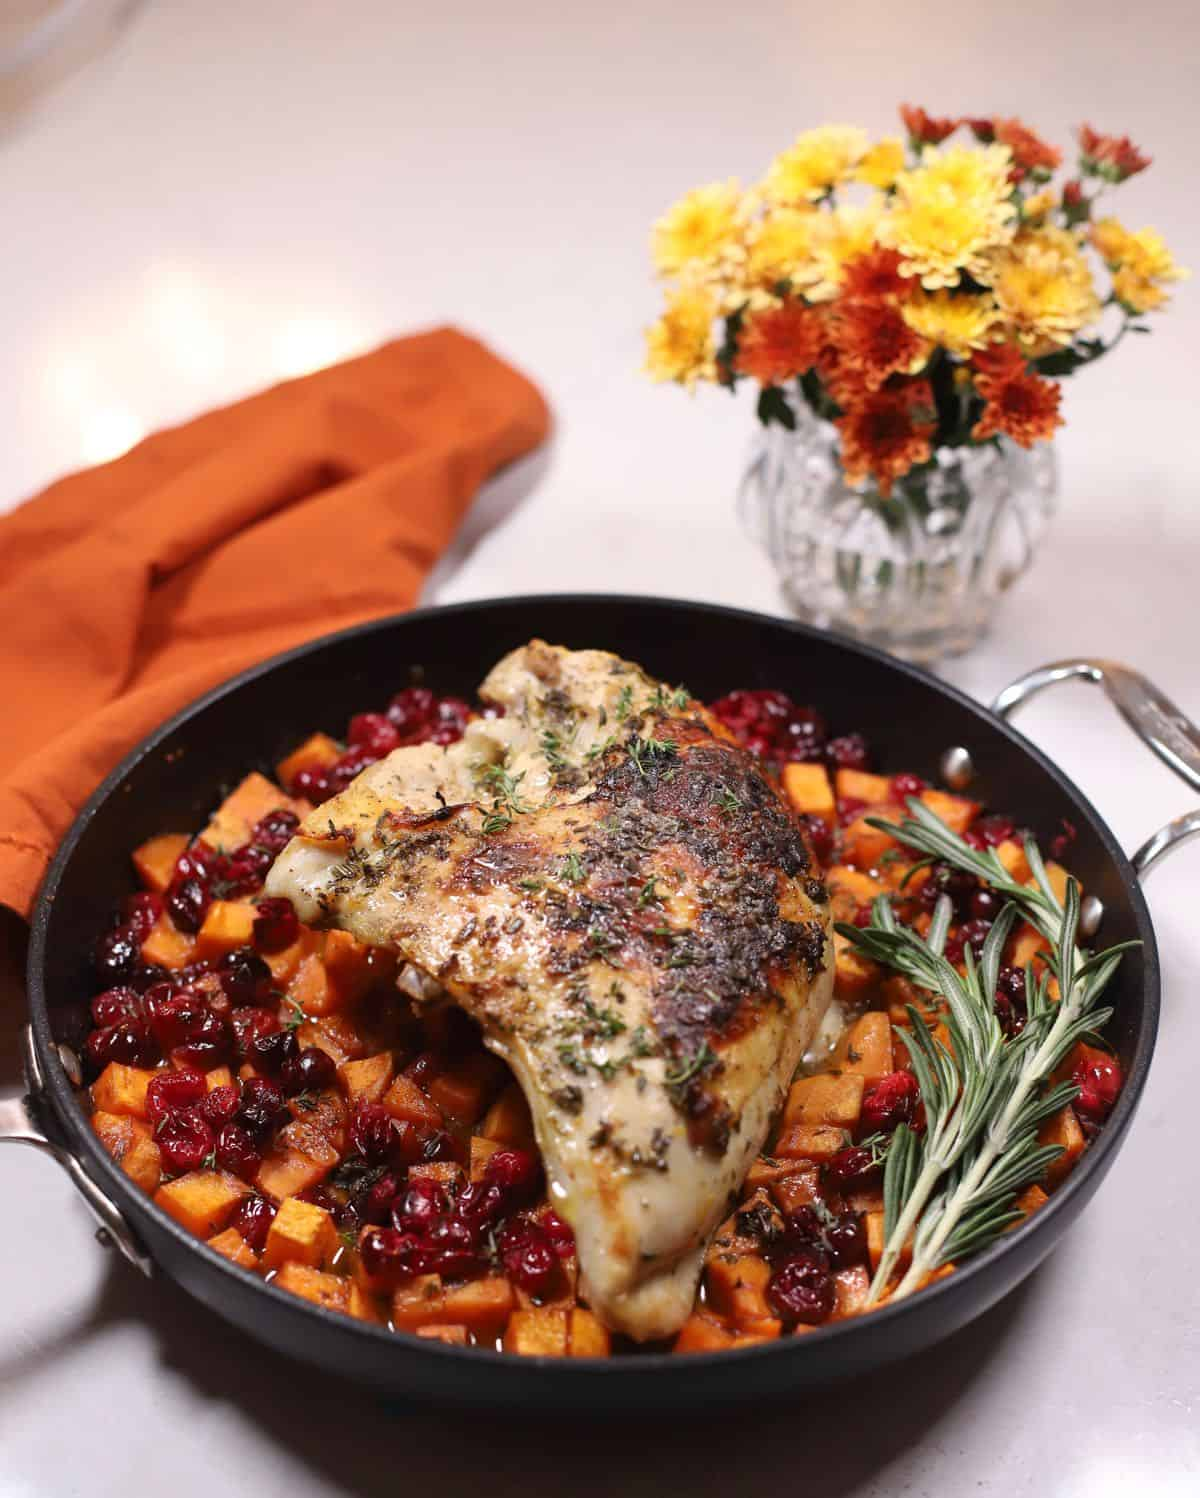 A black skillet with roasted turkey breast, sweet potatoes and cranberries.